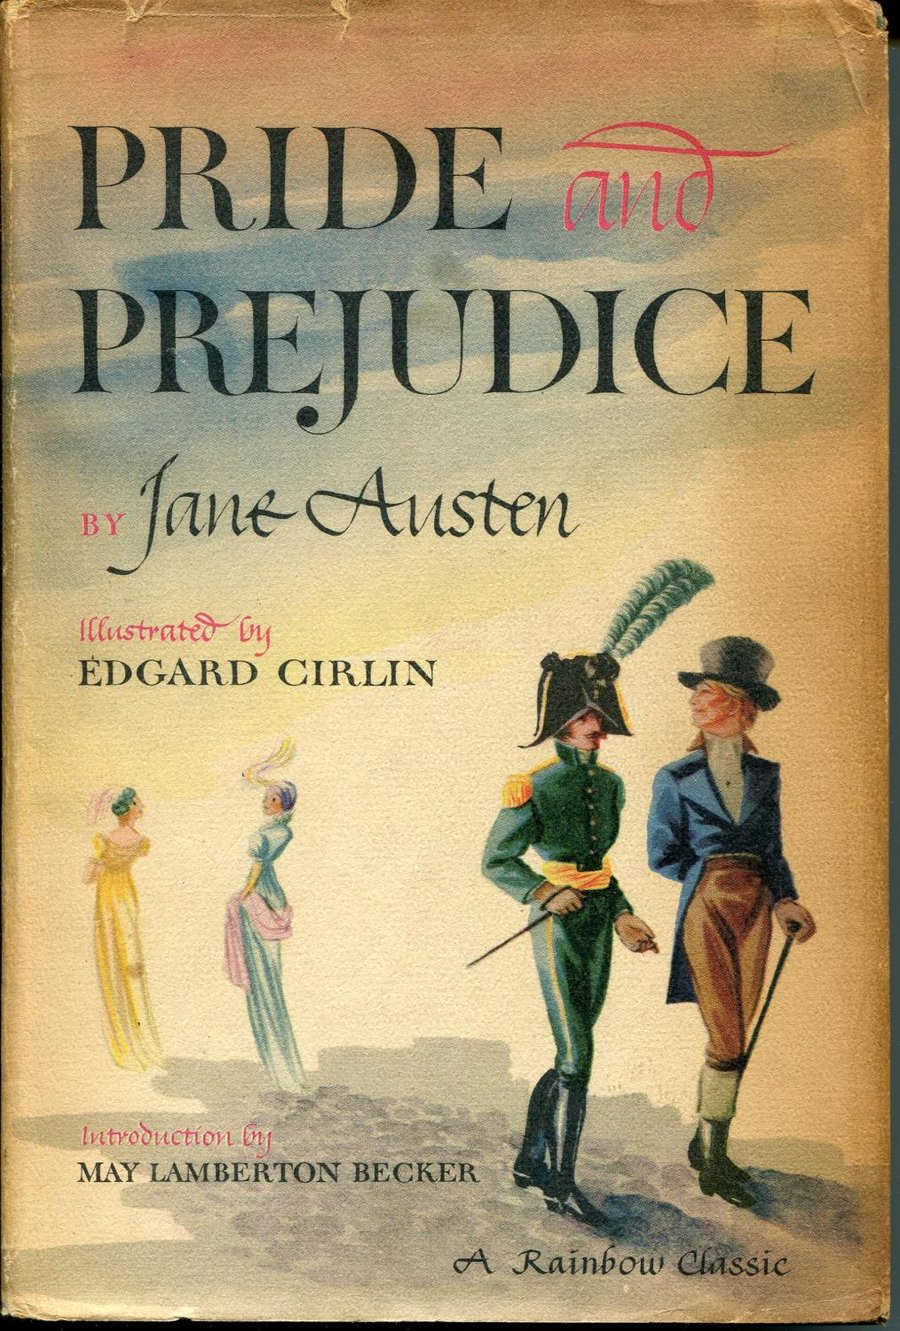 jane austens novel pride and prejudice Pride and prejudice is an 1813 romantic novel by jane austen it charts the emotional development of protagonist elizabeth bennet, who learns the error of making hasty judgments and comes to.